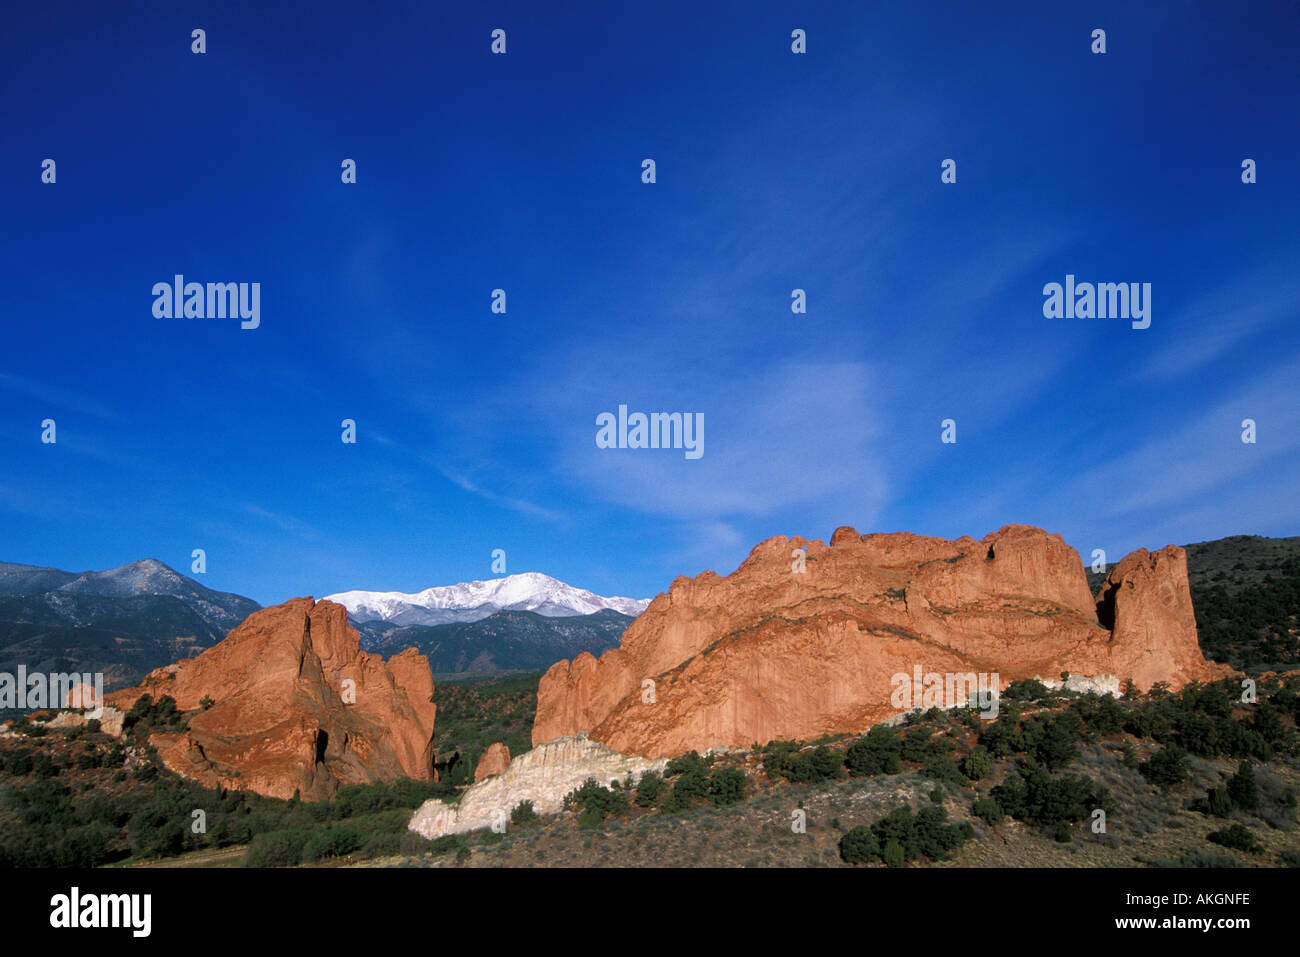 Garden of the Gods rock formations with snow-capped Pikes Peak behind Colorado Springs, Colorado Stock Photo